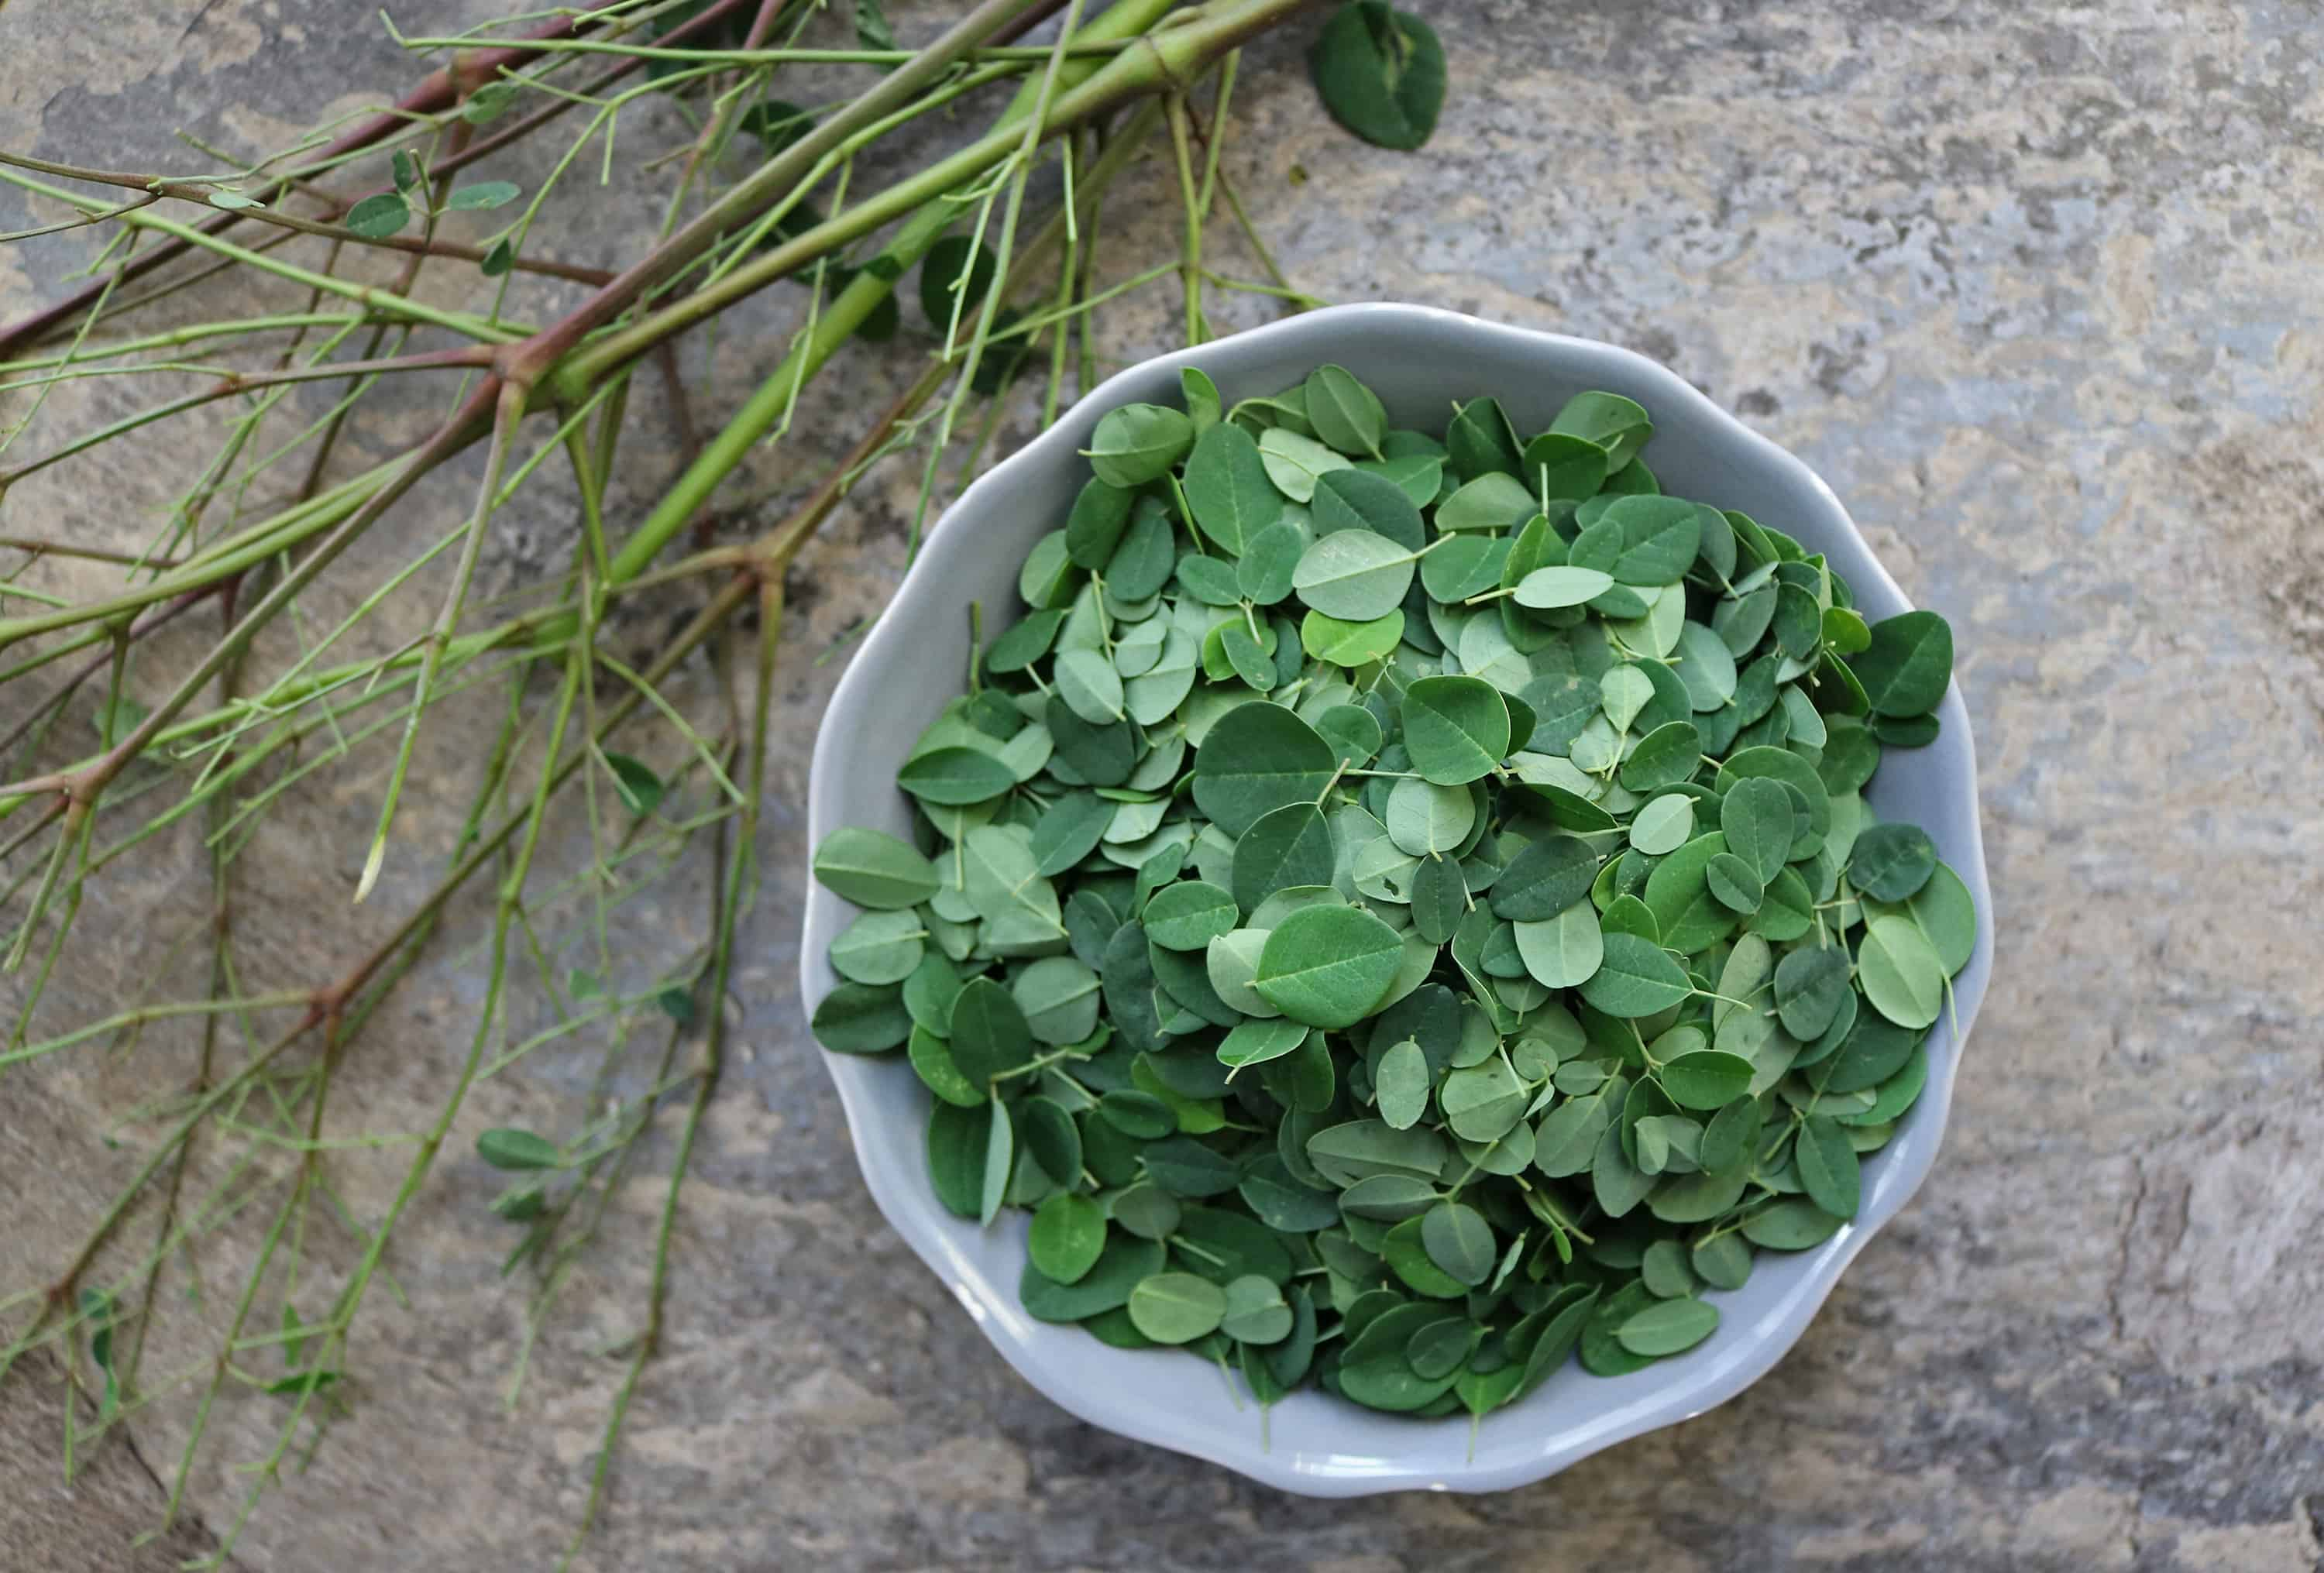 Using Fresh Moringa Leaves by placing the leaves in a bowl and discarding the stems.